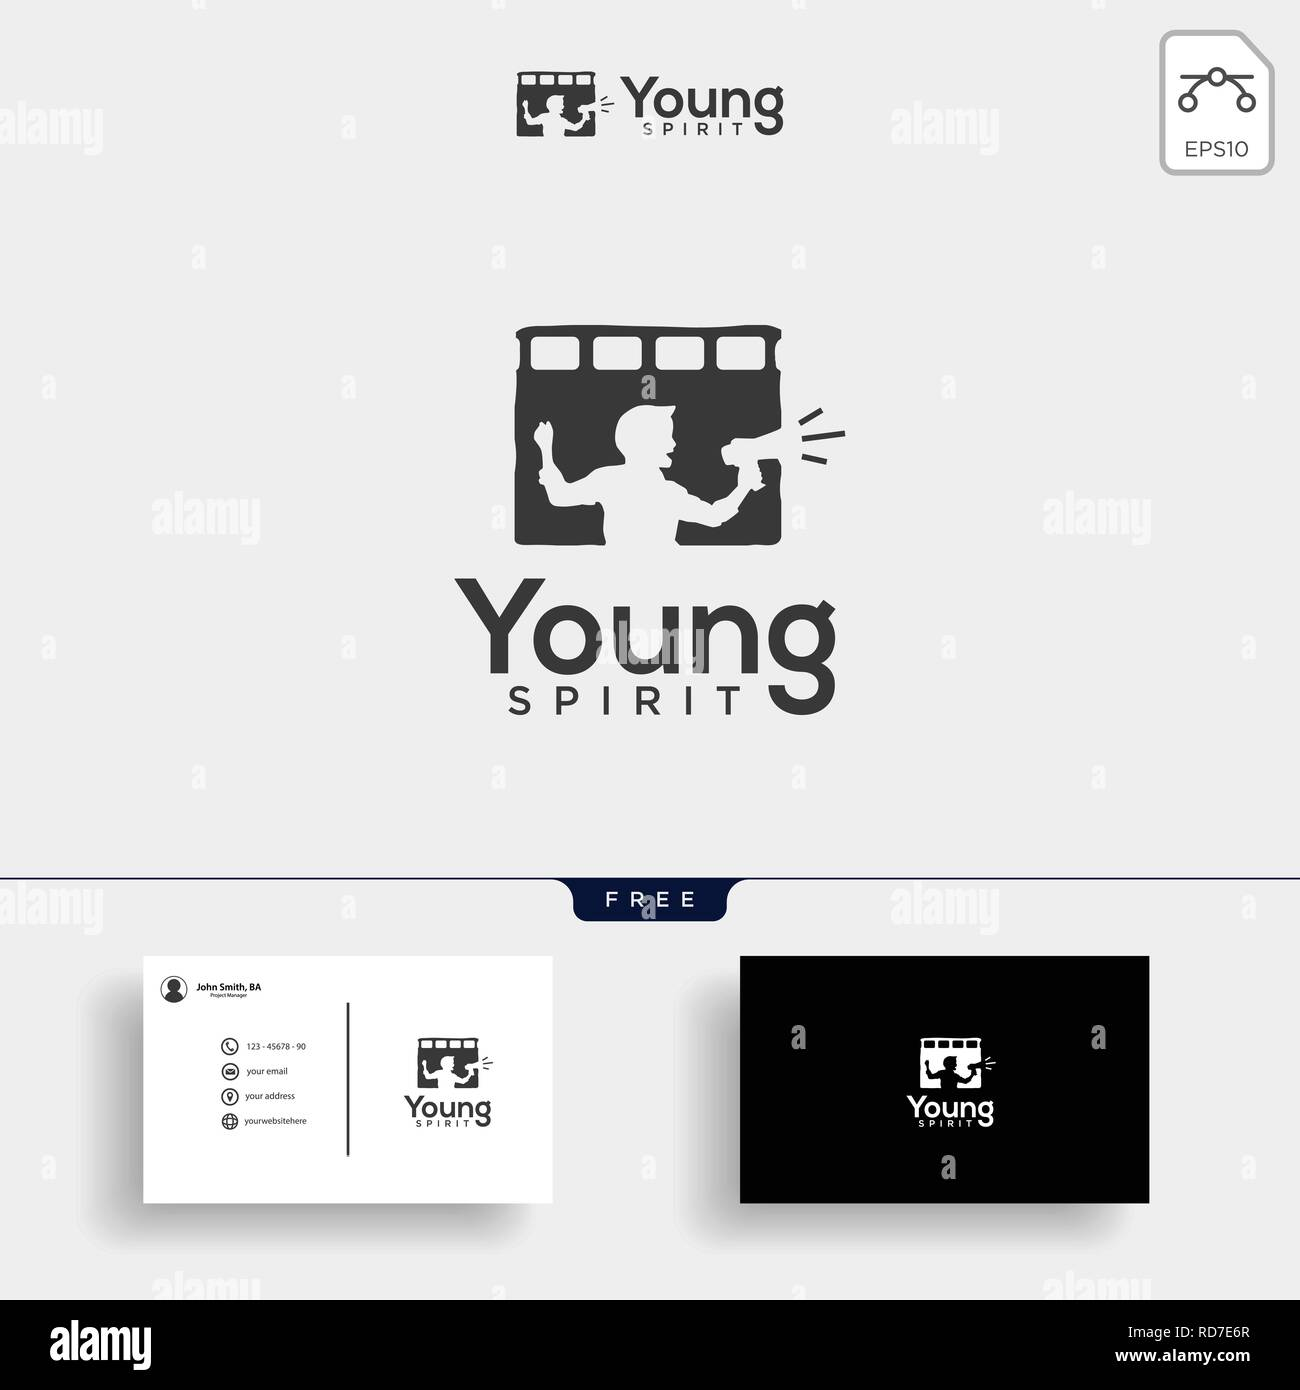 children film, broadcast logo template vector illustration with business card, icon element isolated - Stock Image